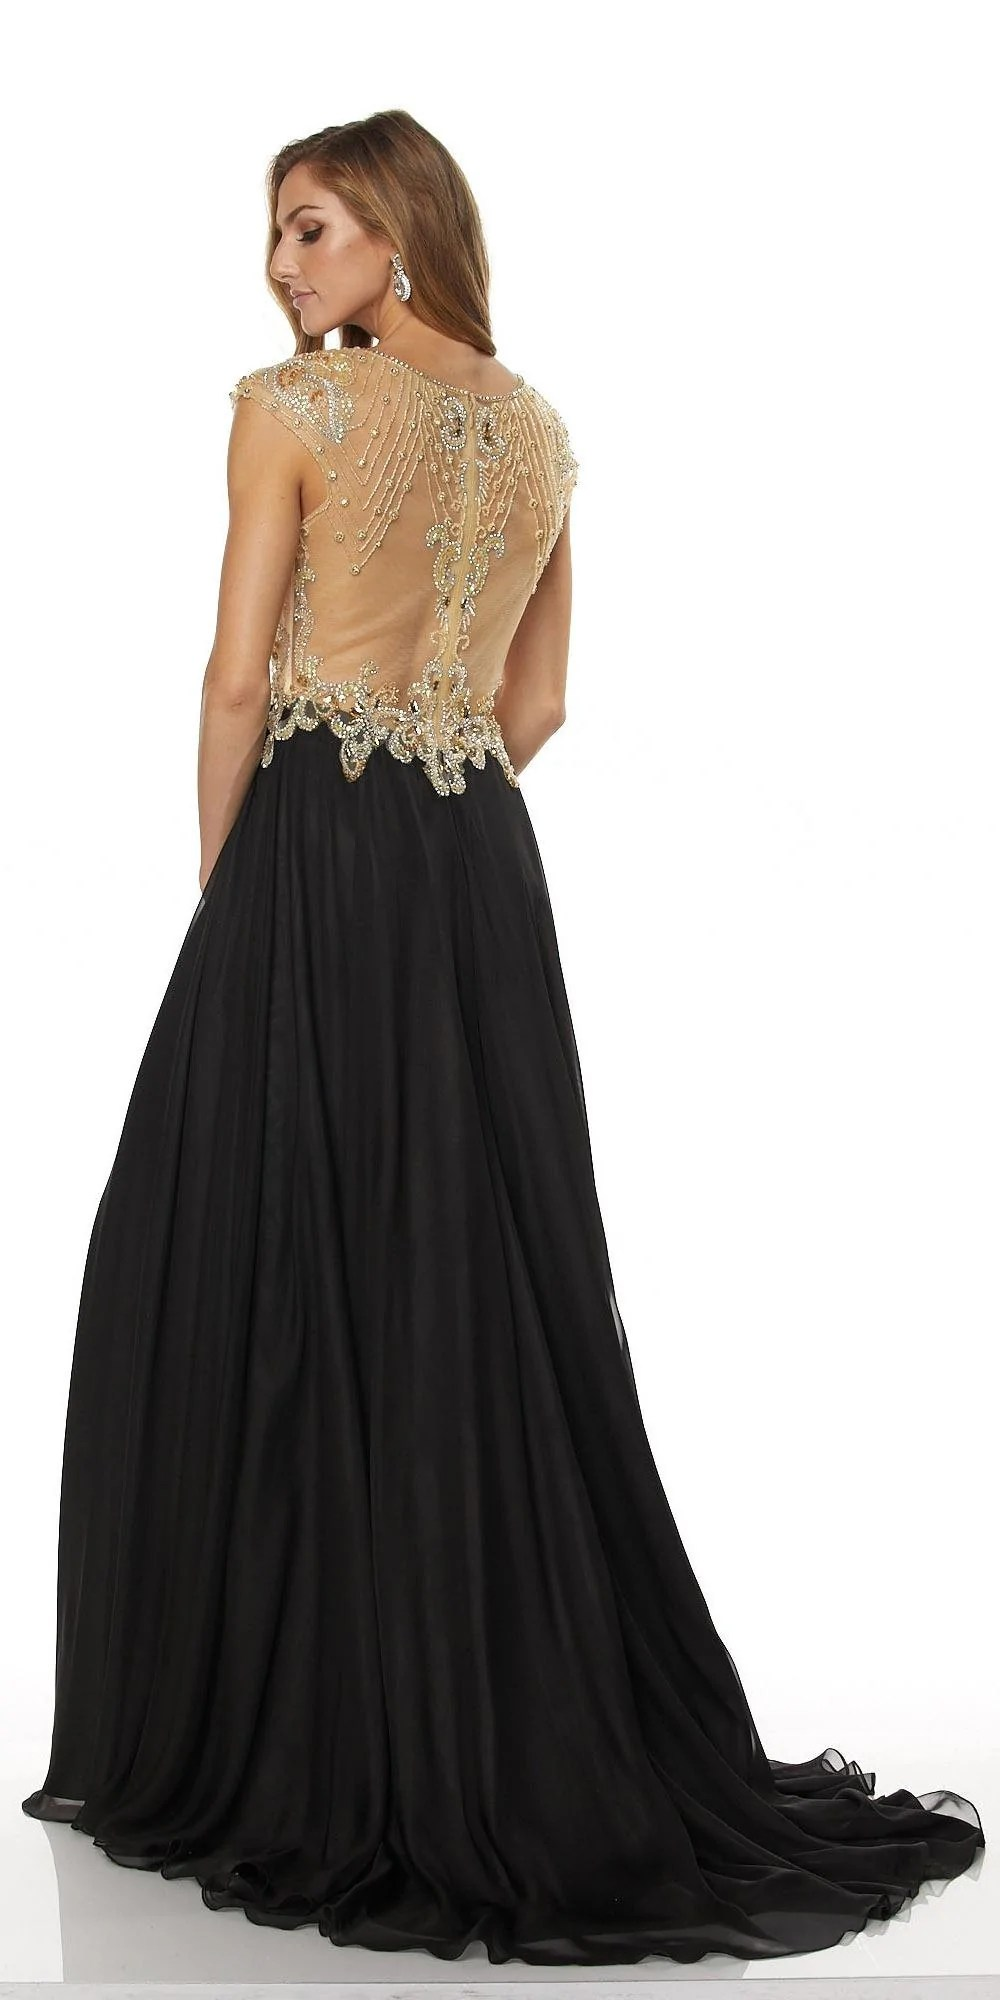 Beaded Evening Gowns with Sleeves and Slit